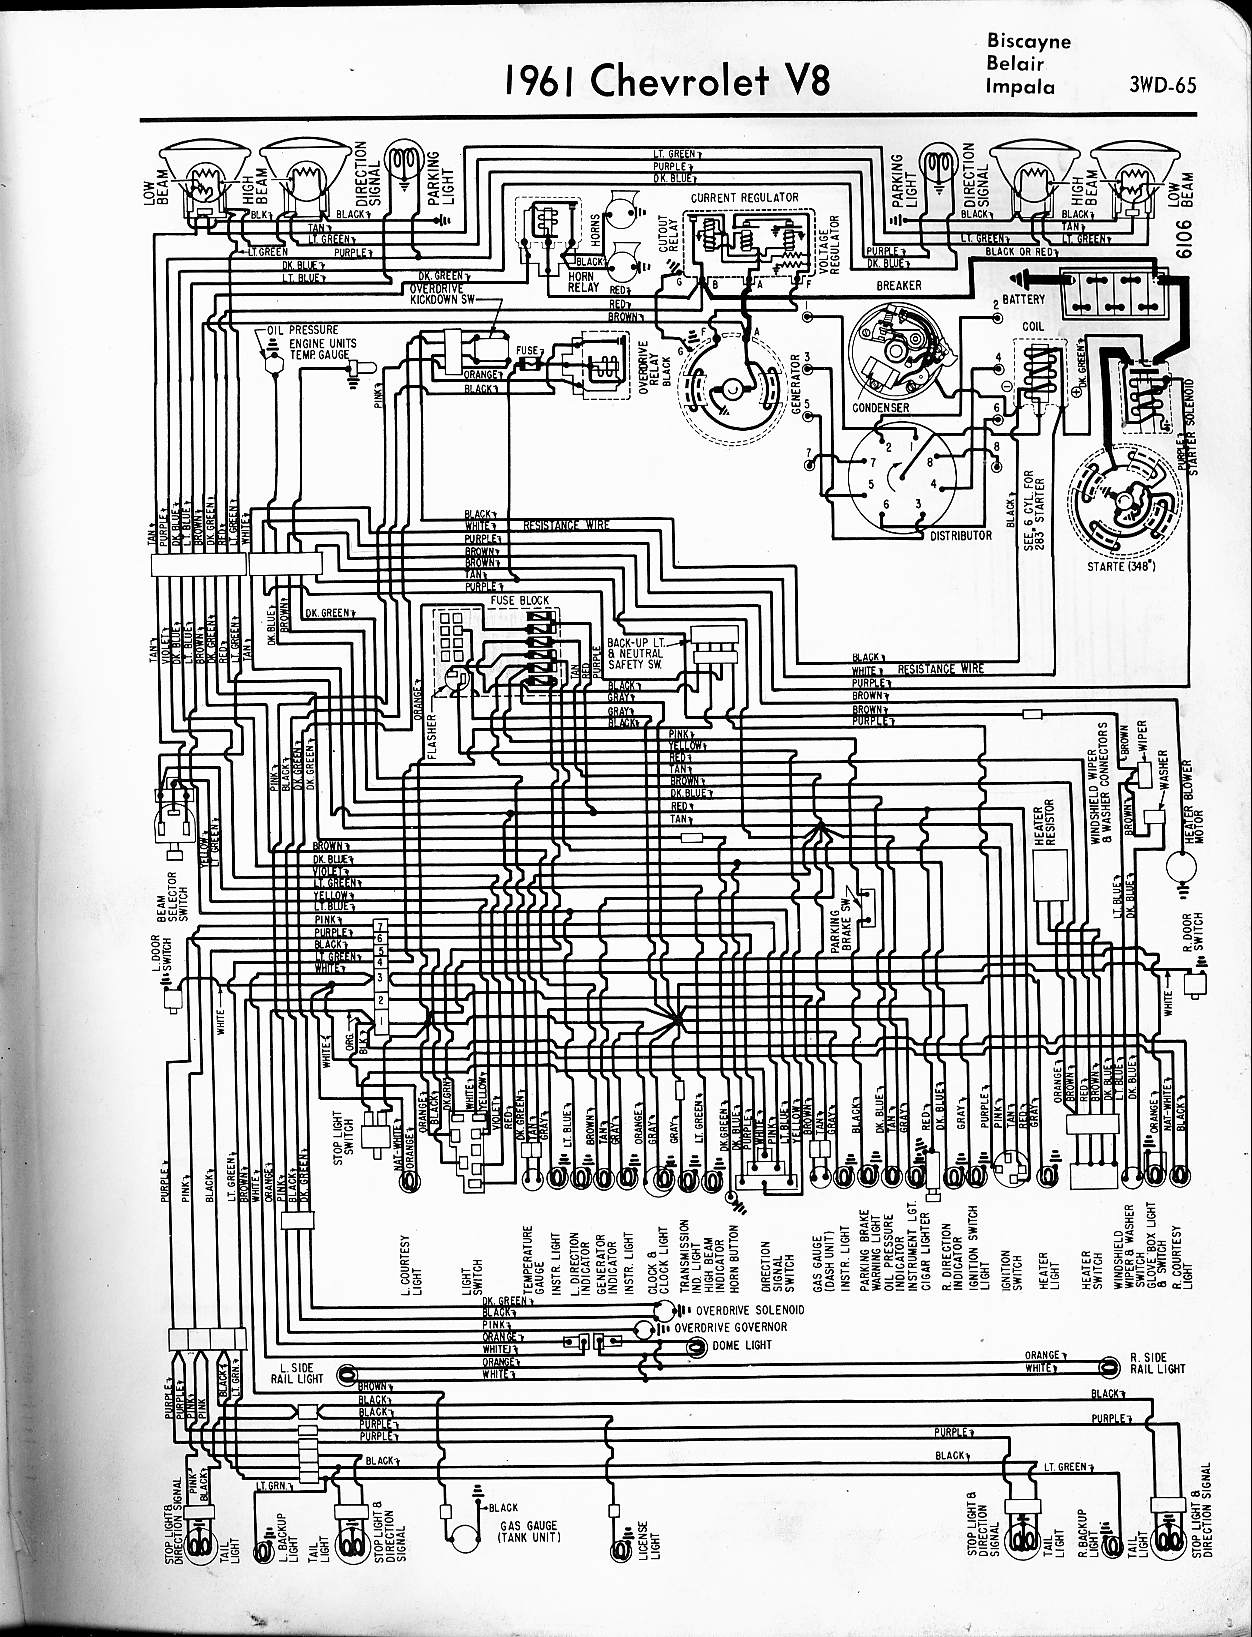 Heater And Ac Schematic With Ac furthermore Cdf De Bae D C E Bf moreover Bus Emergency Lights likewise Ibeams moreover Willcox Corvette Heater Schematic With Testb. on 1965 corvette wiring schematic